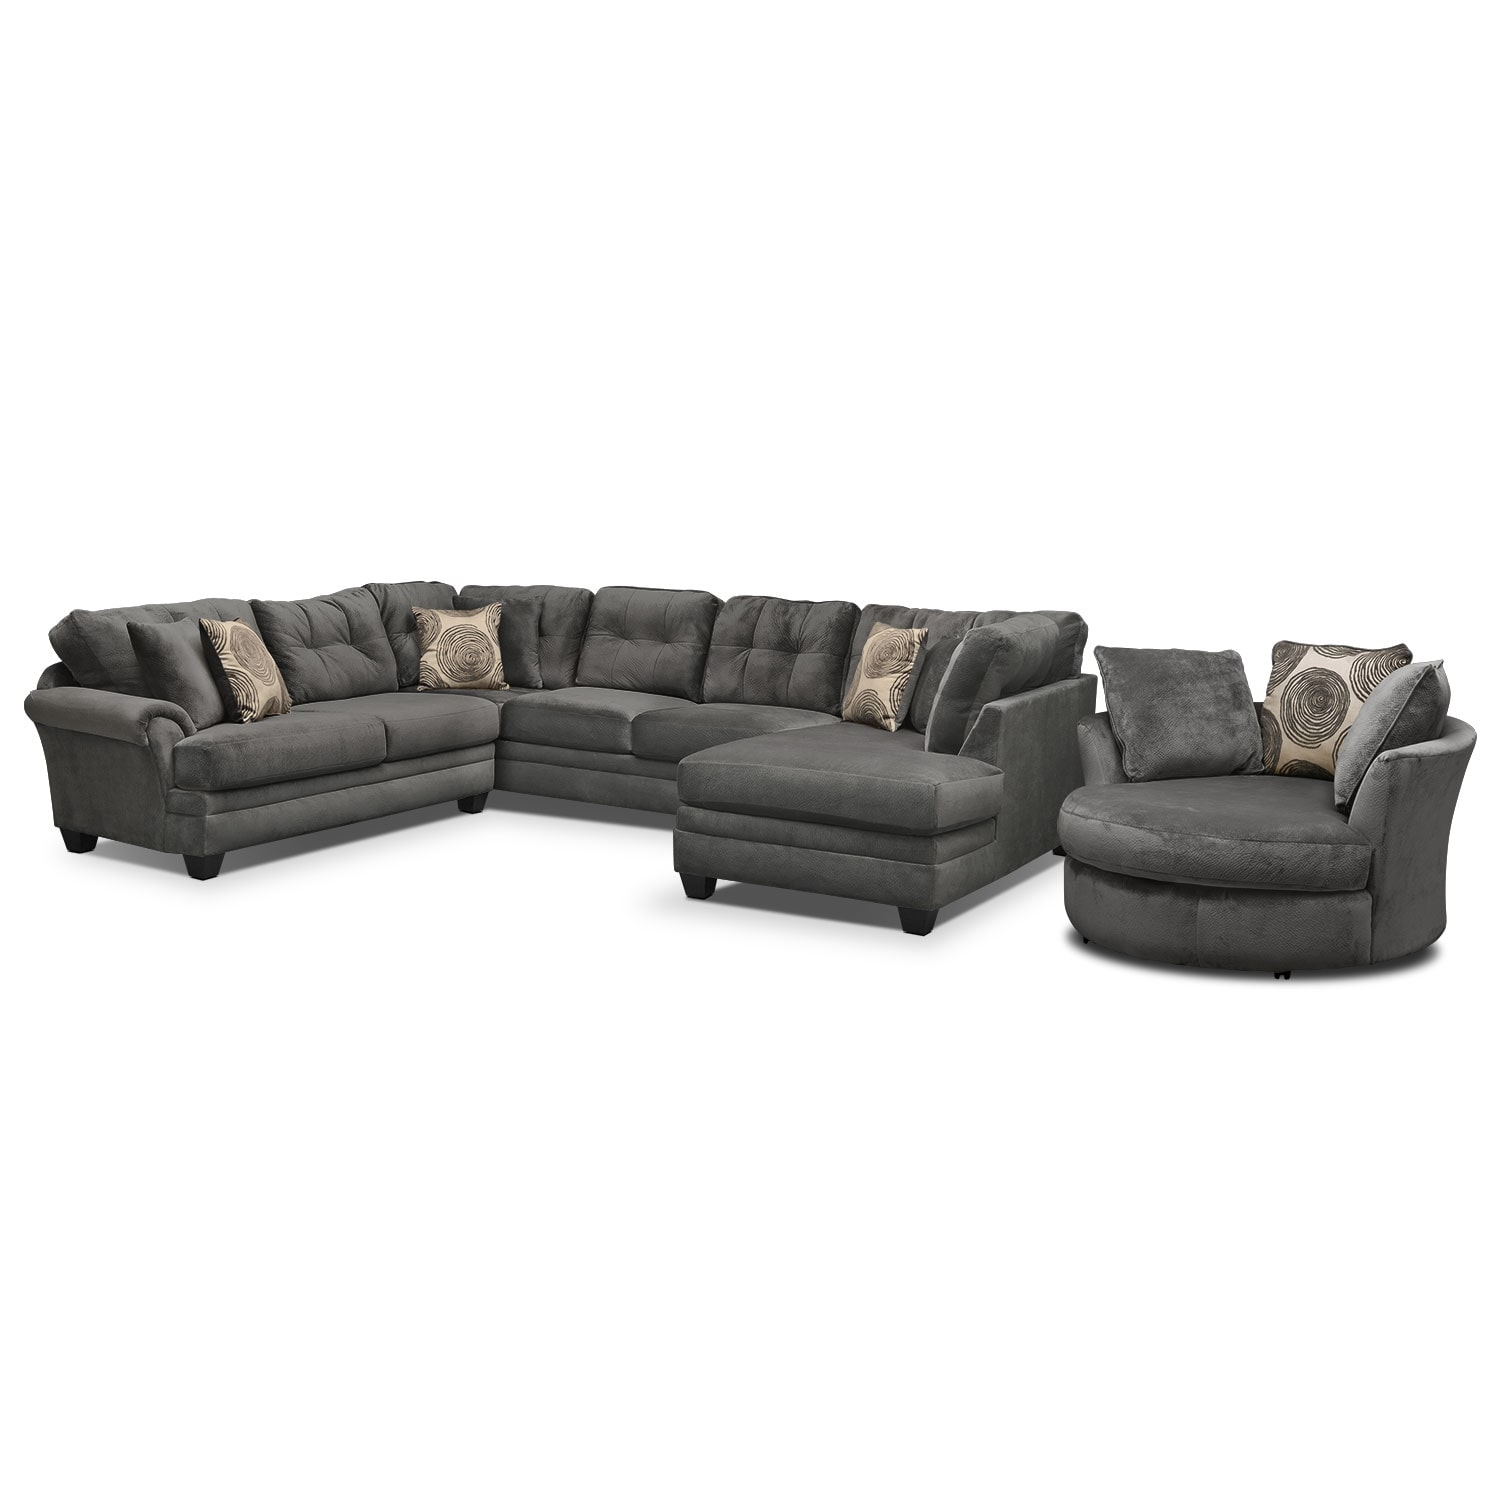 Genial Living Room Furniture   Cordelle 3 Piece Sectional With Right Facing Chaise  And Swivel